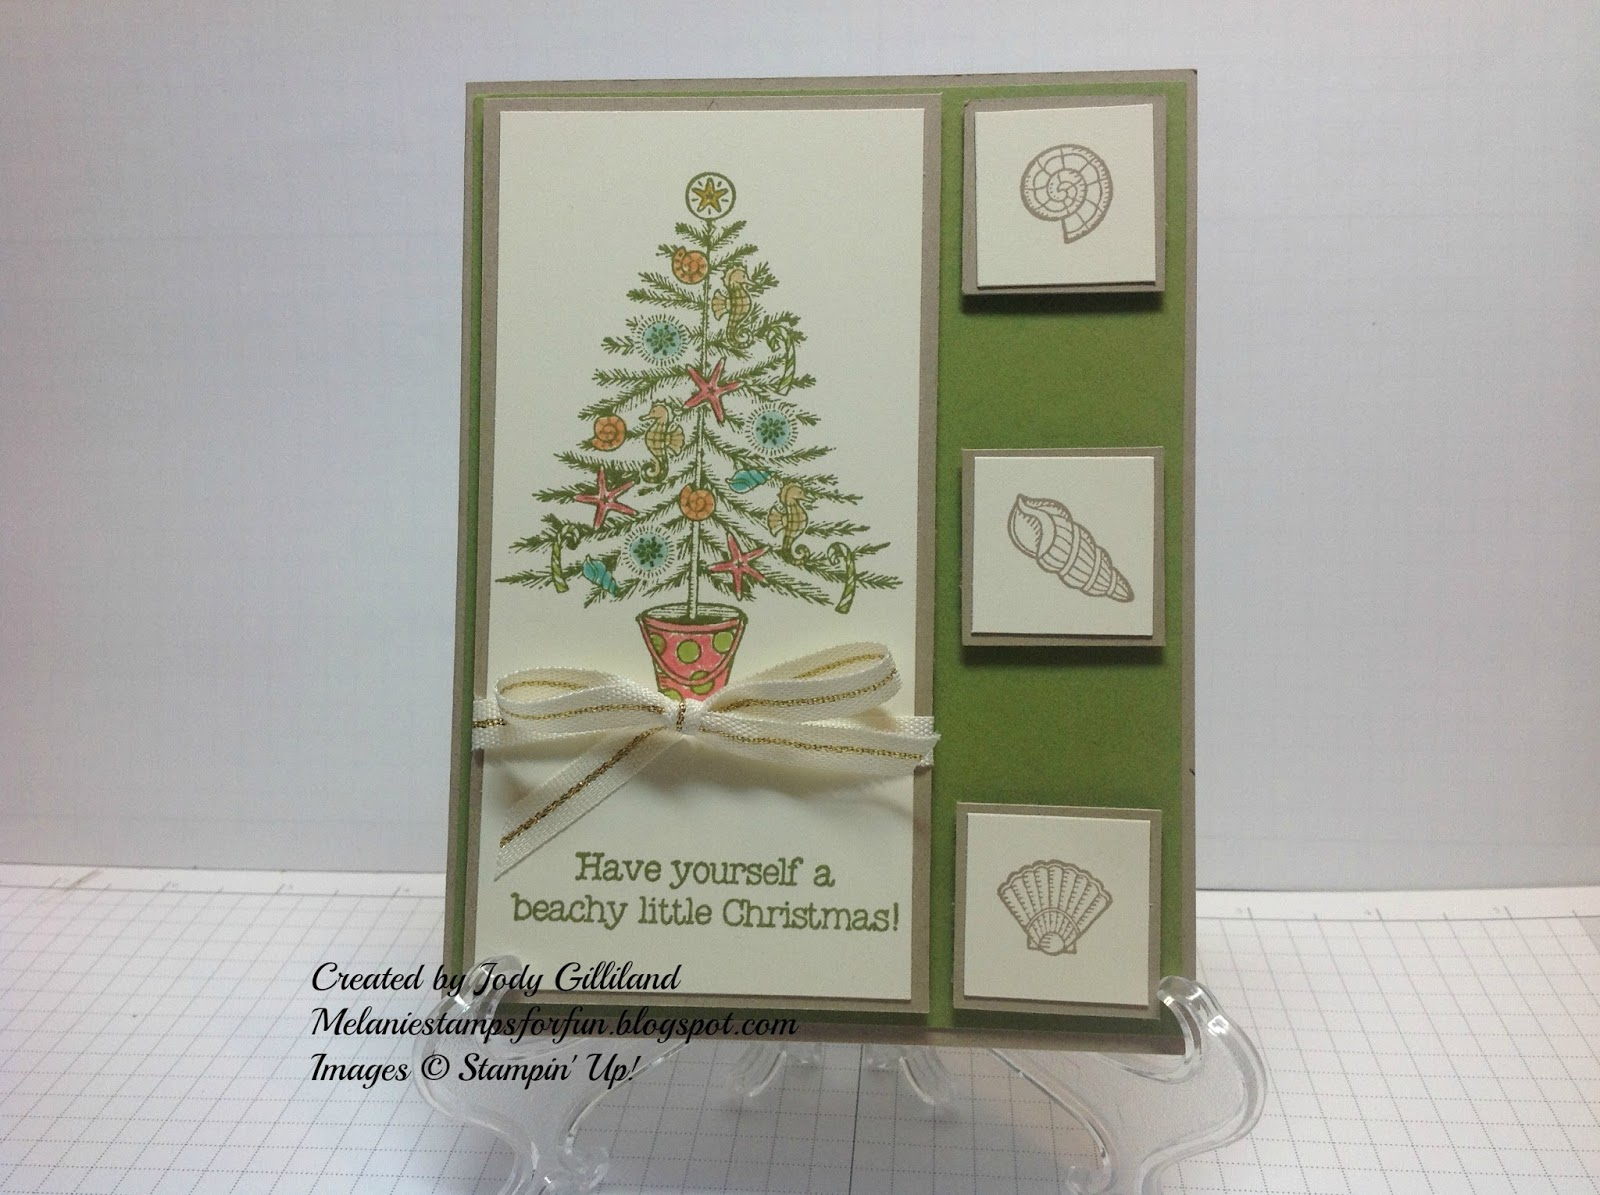 When Is Little Christmas.Stamp With Melanie Beachy Little Christmas